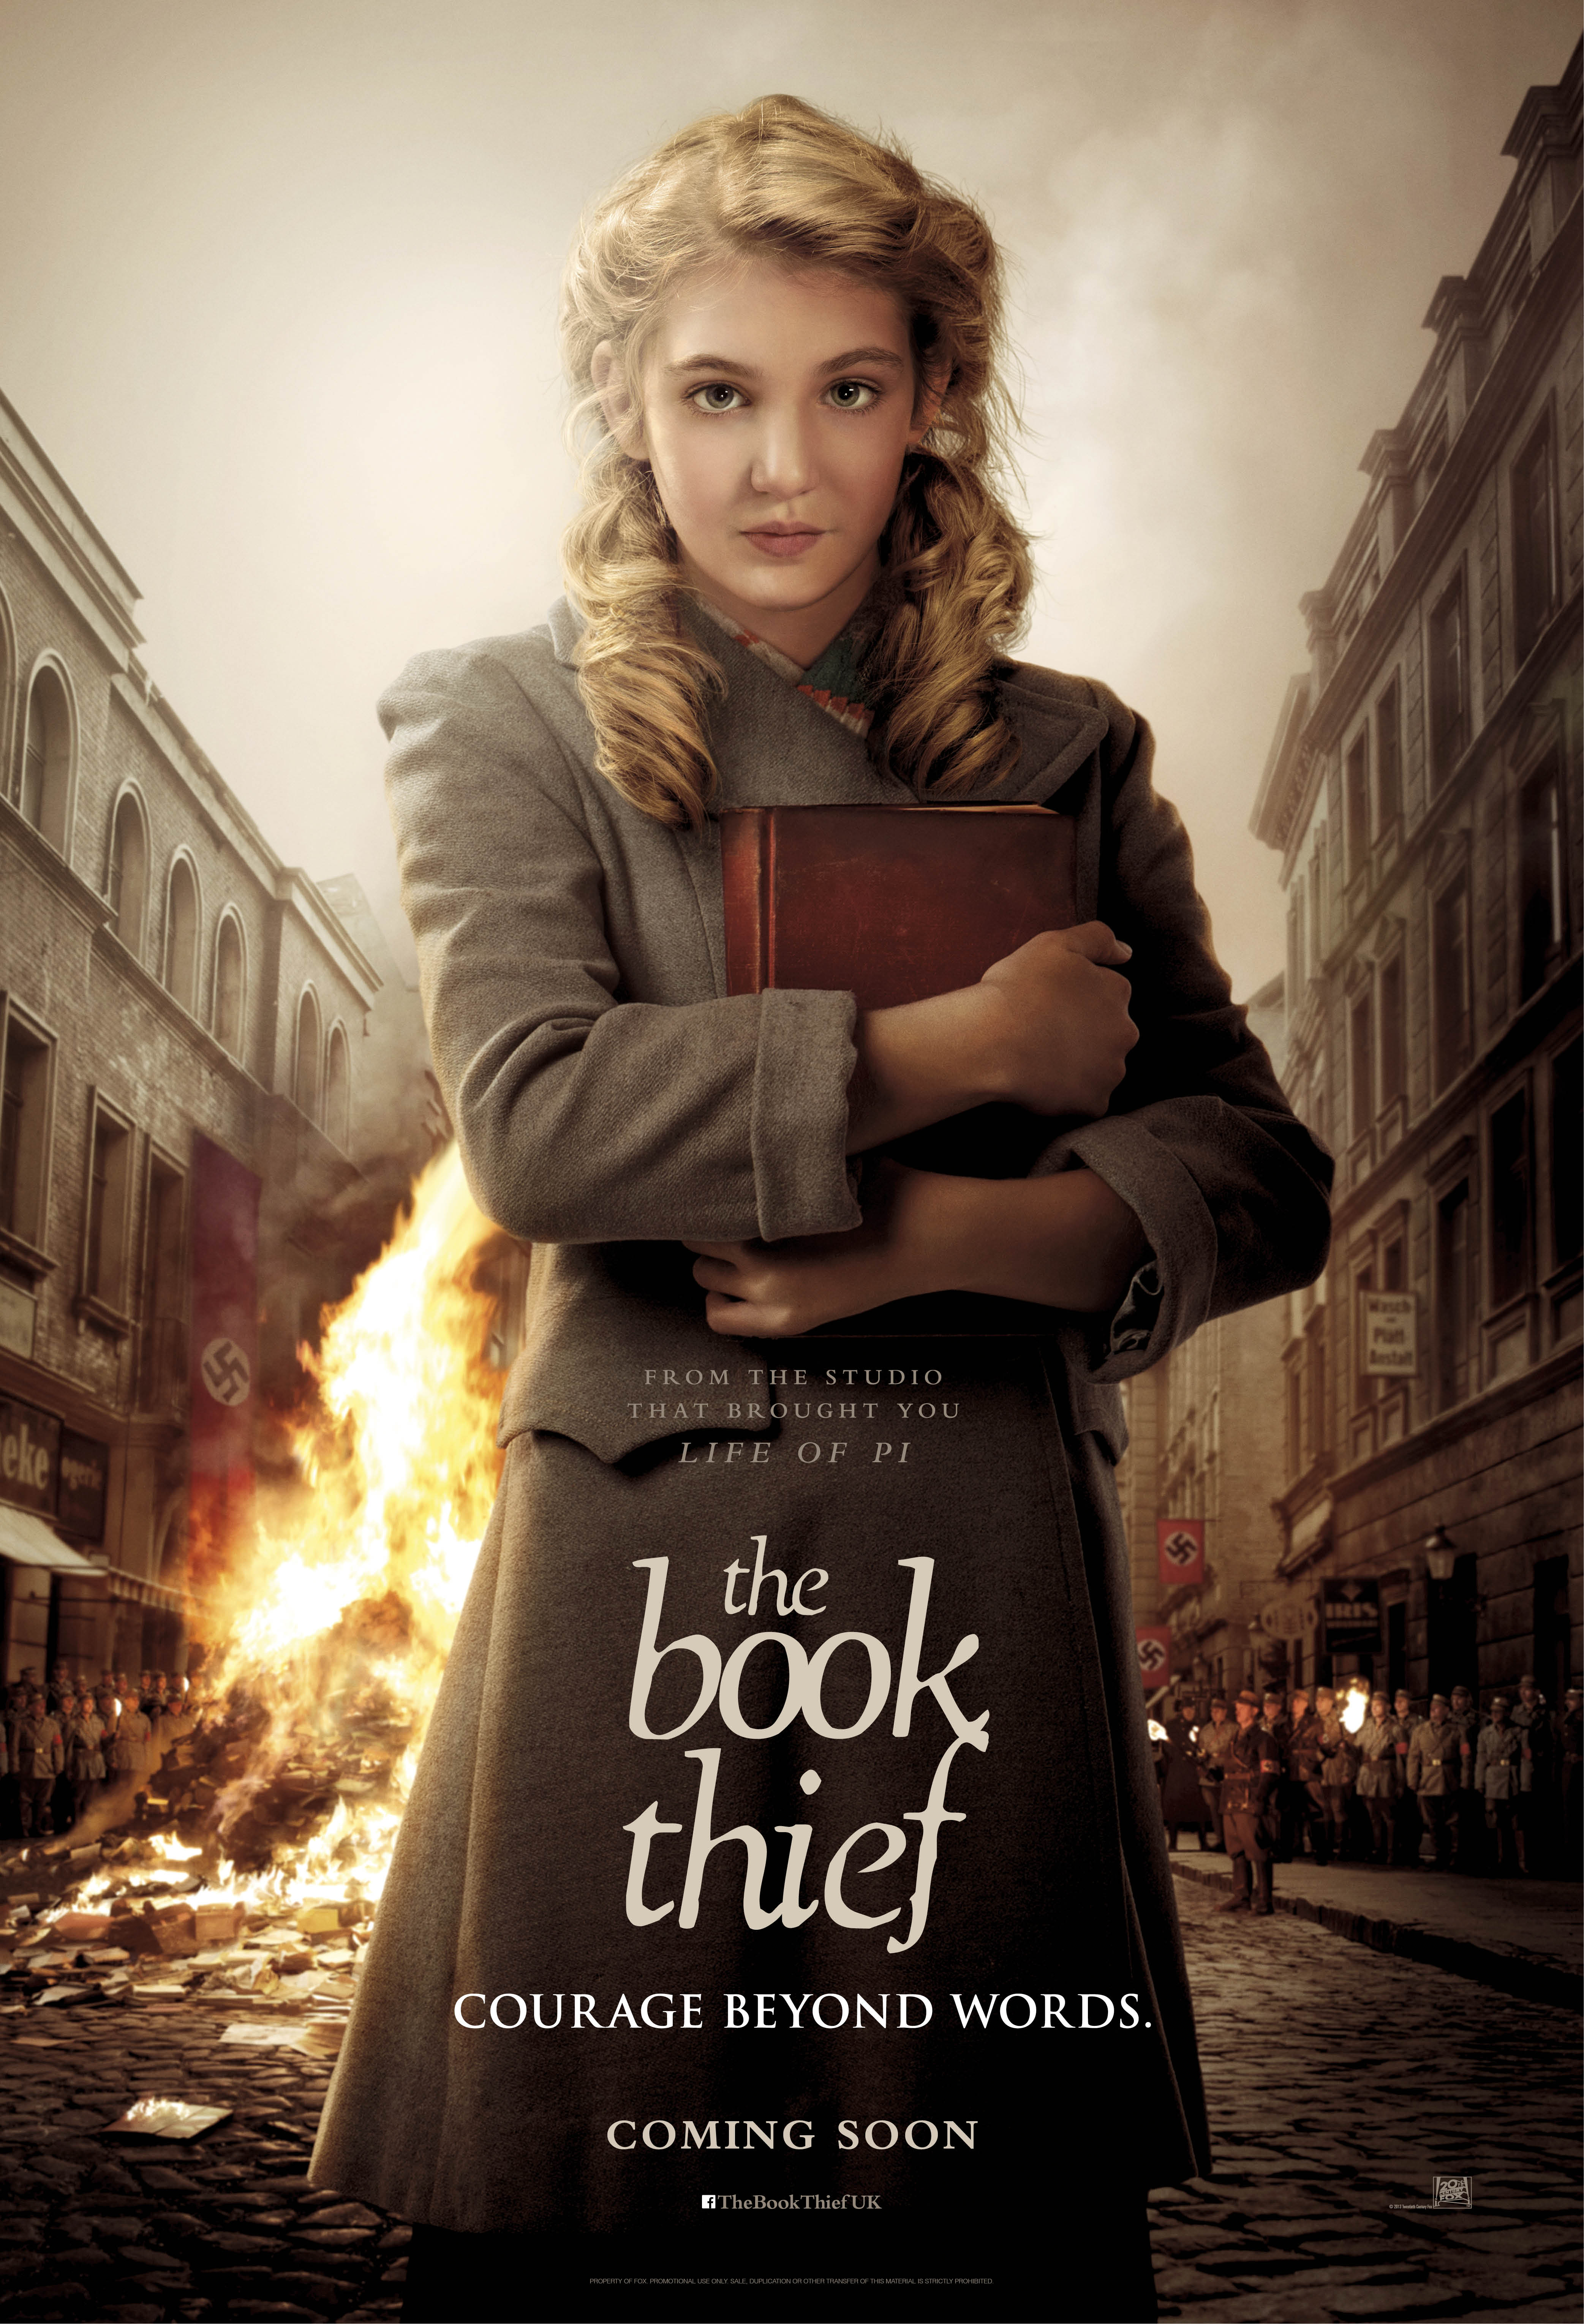 http://upodcasting.com/wp-content/uploads/2013/10/1382460194-The-Book-Thief-Teaser-1-Sheet.jpg